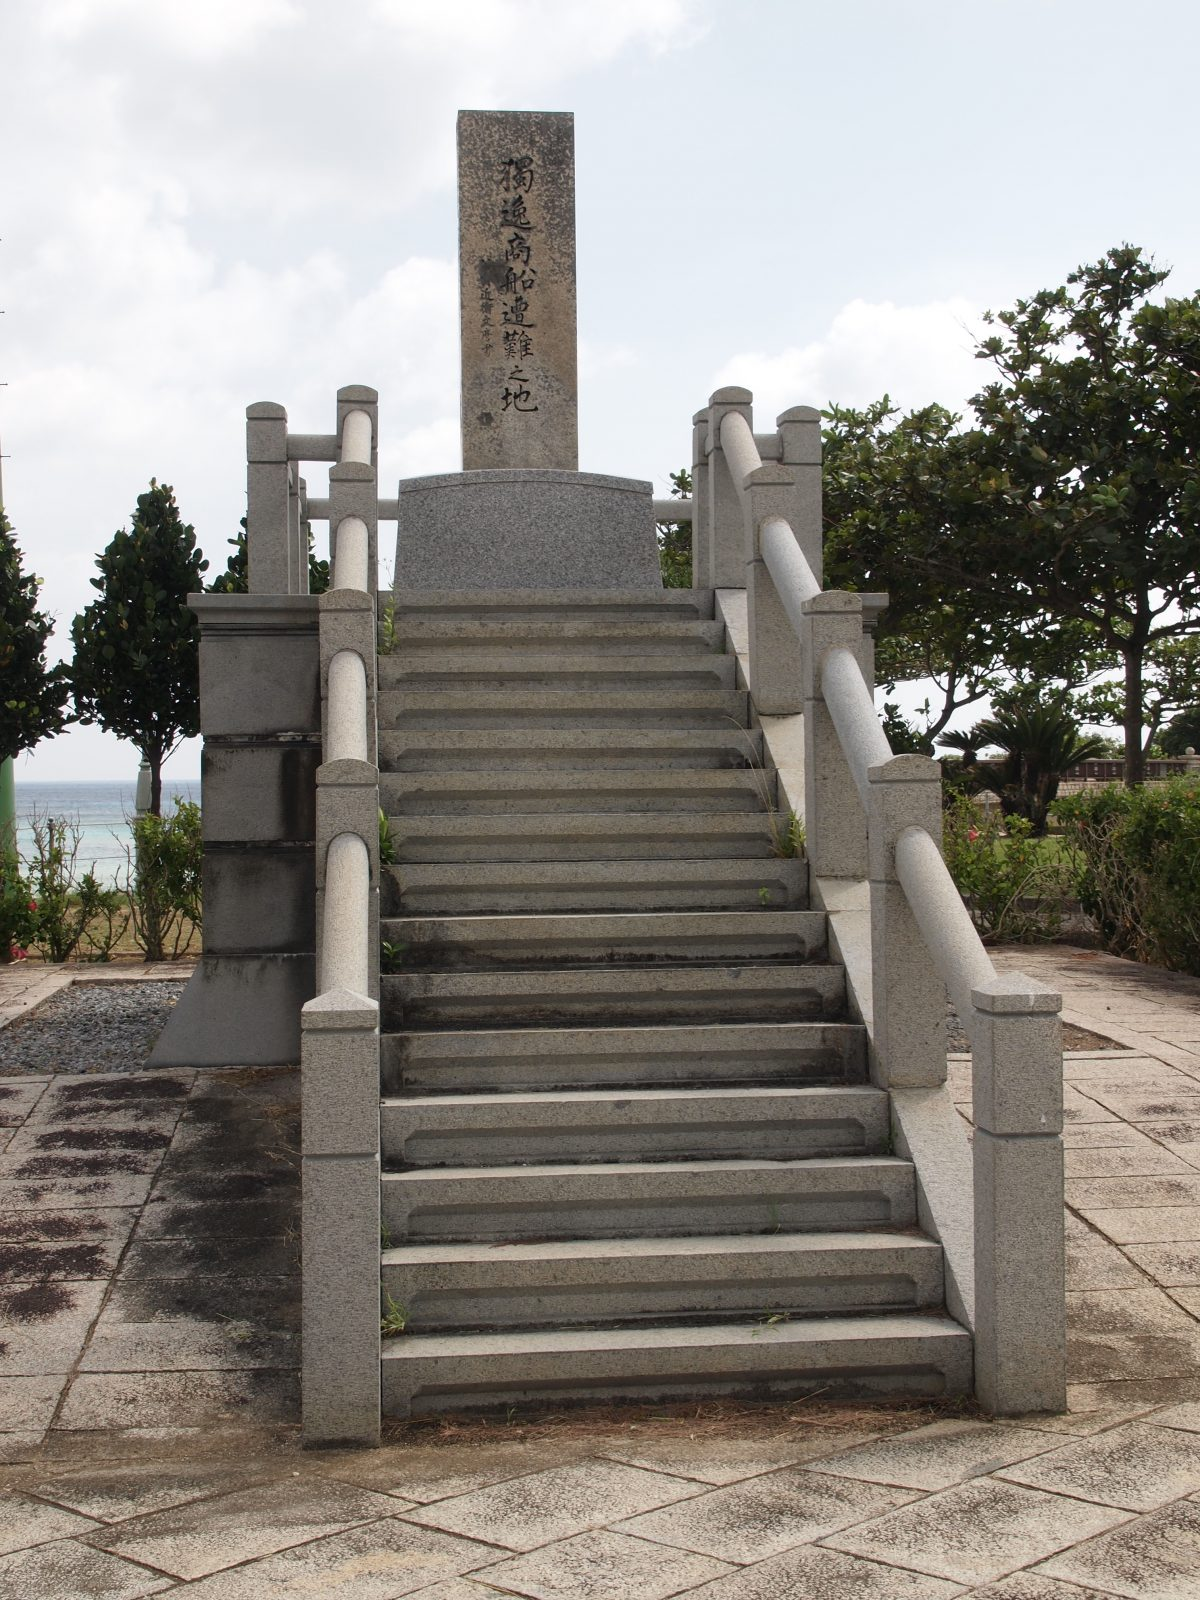 German Emperor William I erected this monument to show gratitude to the local people and have since become a symbol of Japanese-German friendship.